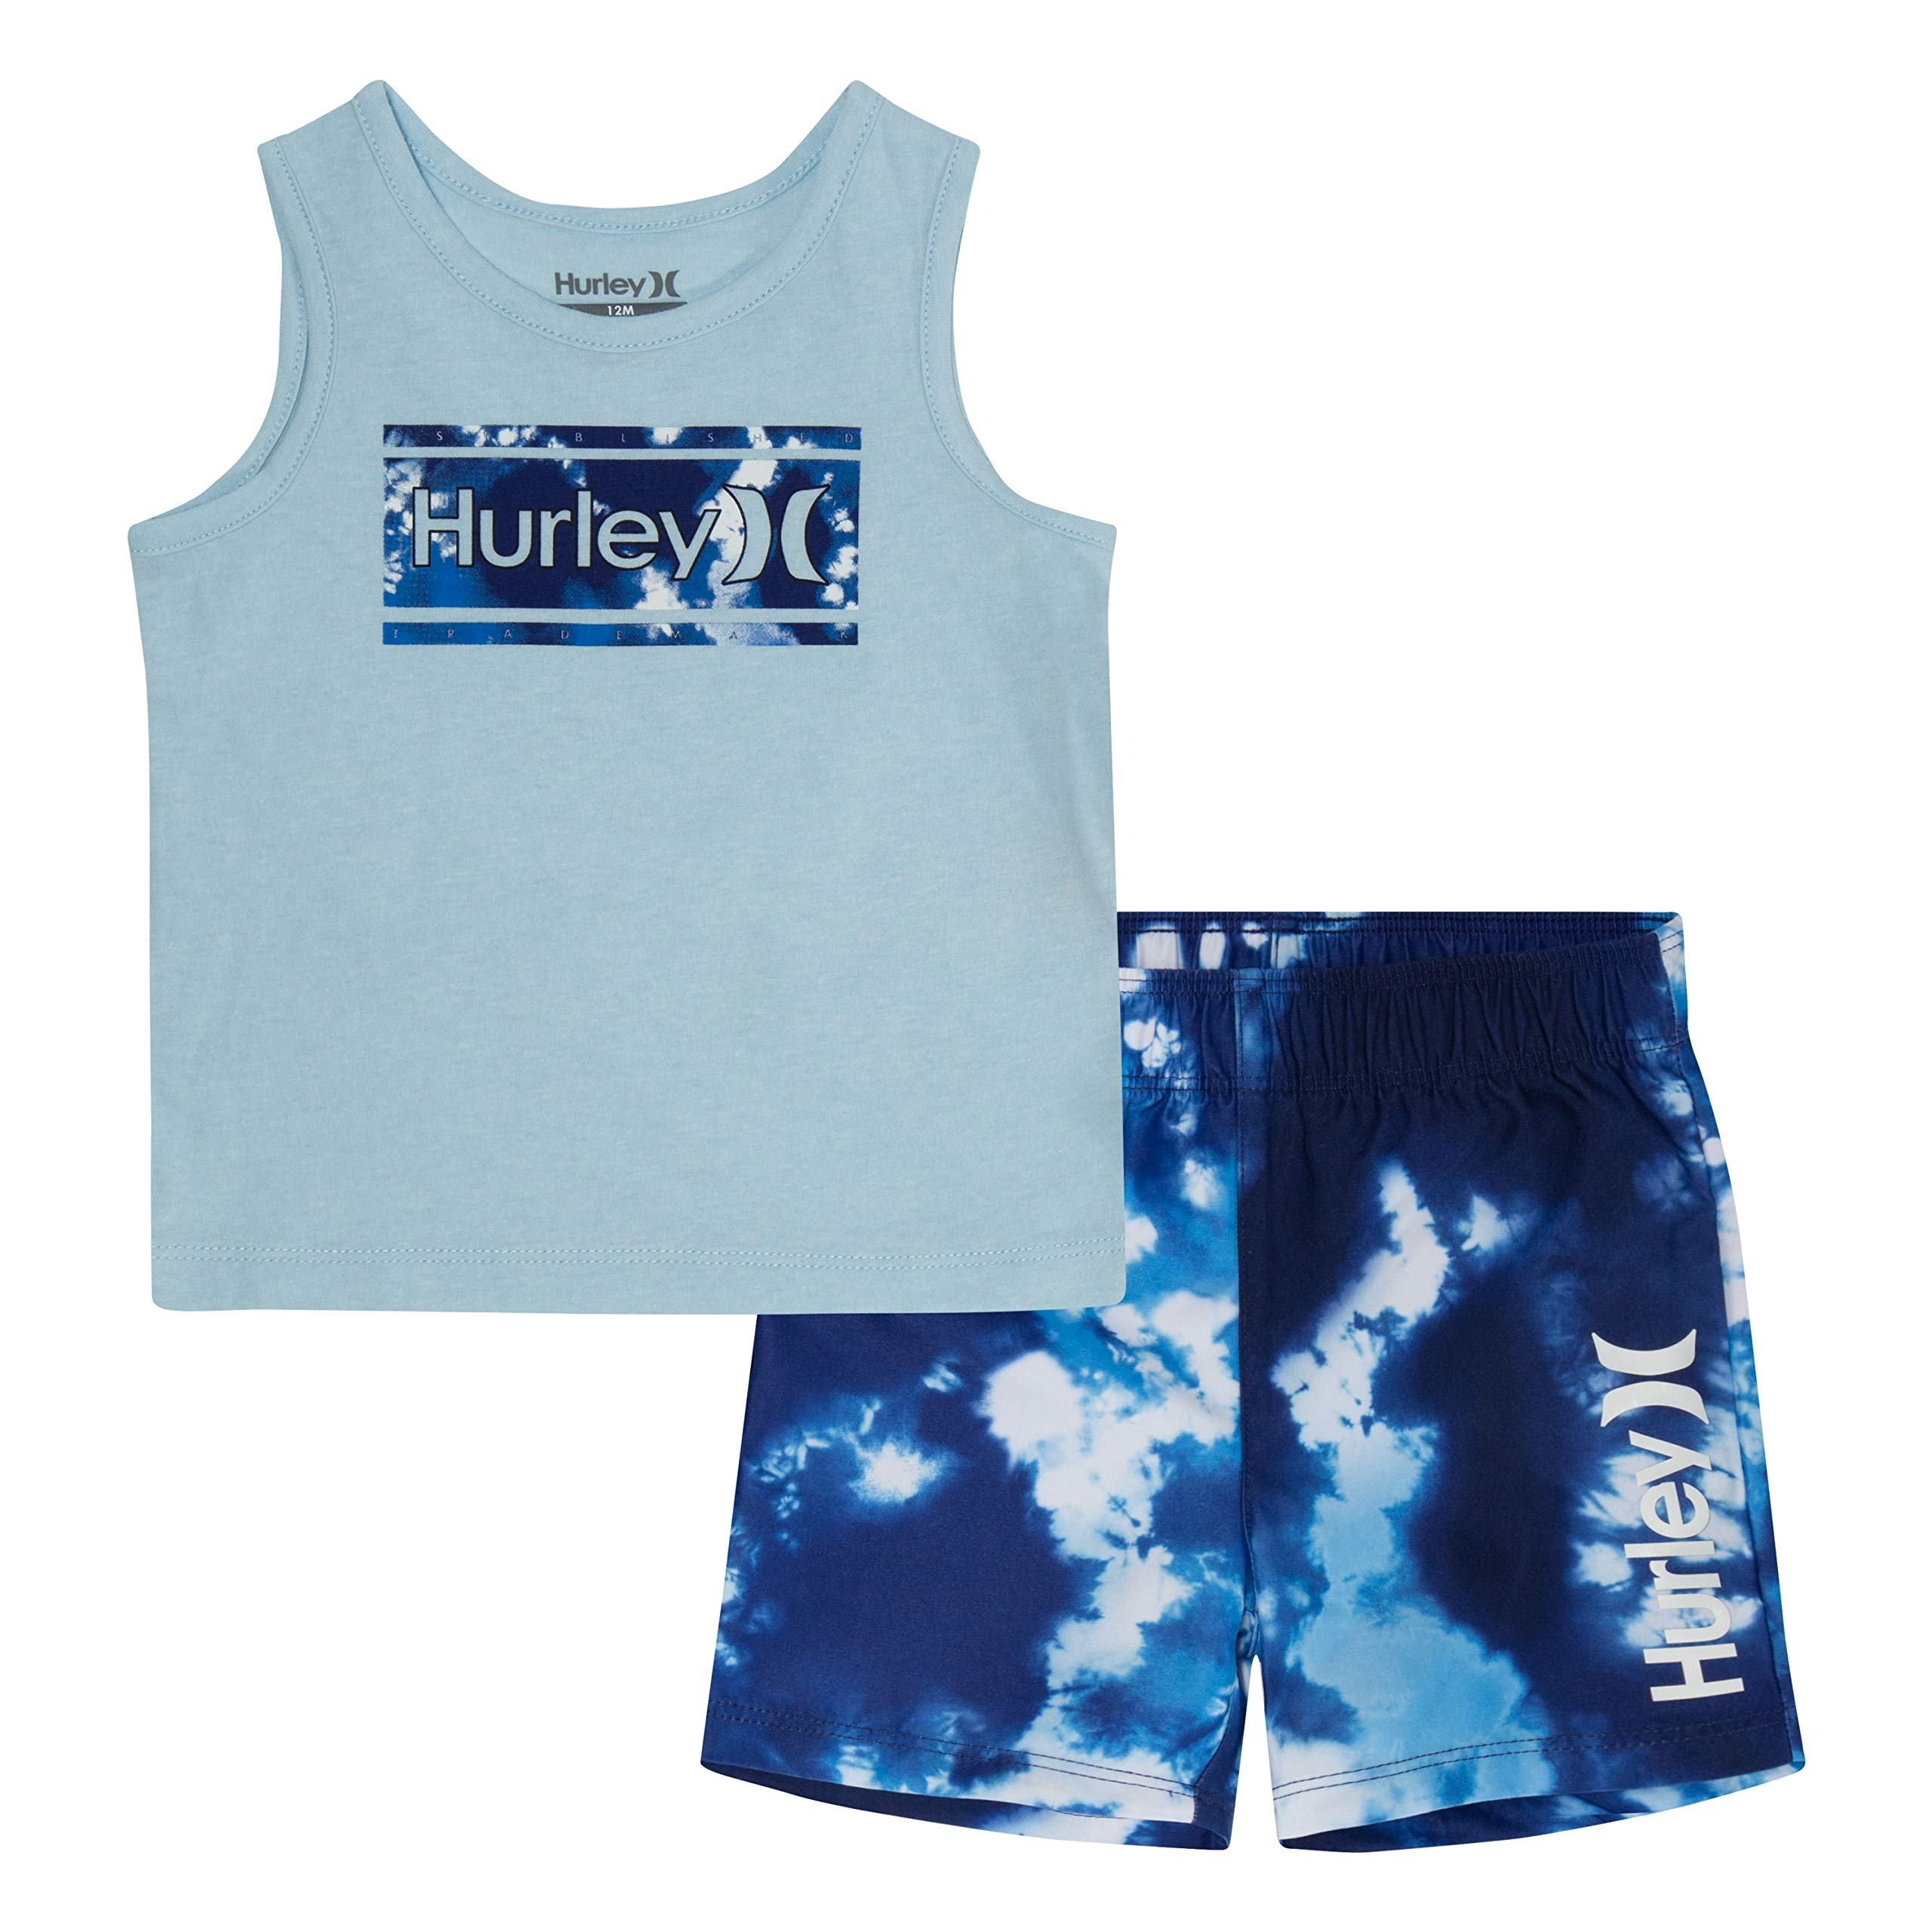 Hurley Boys' Little' Tank Top and Shorts 2-Piece Set, Deep Royal Blue Tie Die, 4